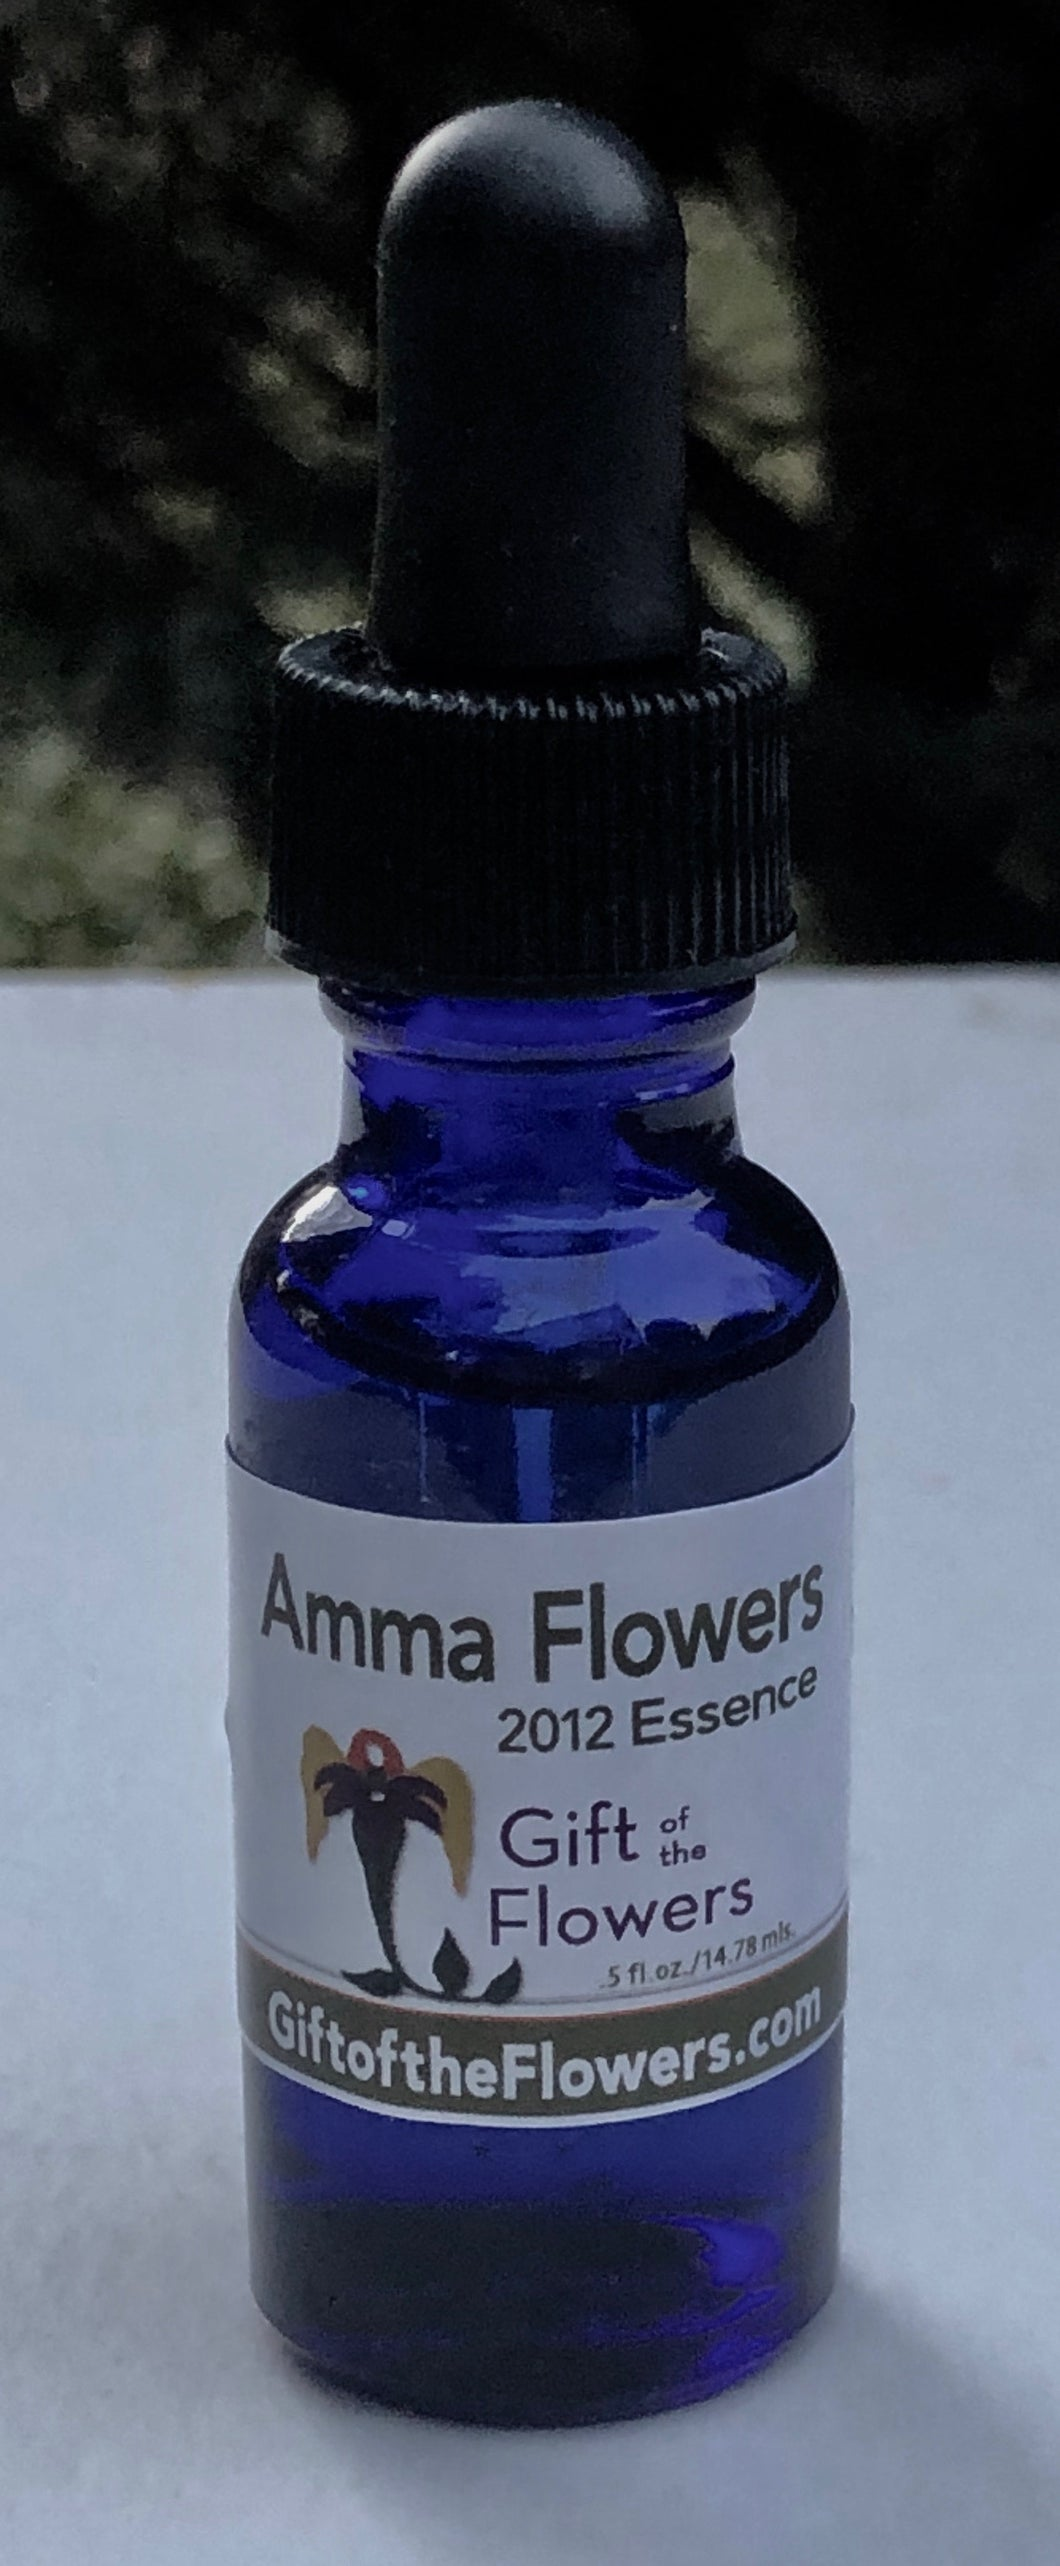 Amma Flowers Essence-2012 .5 oz.